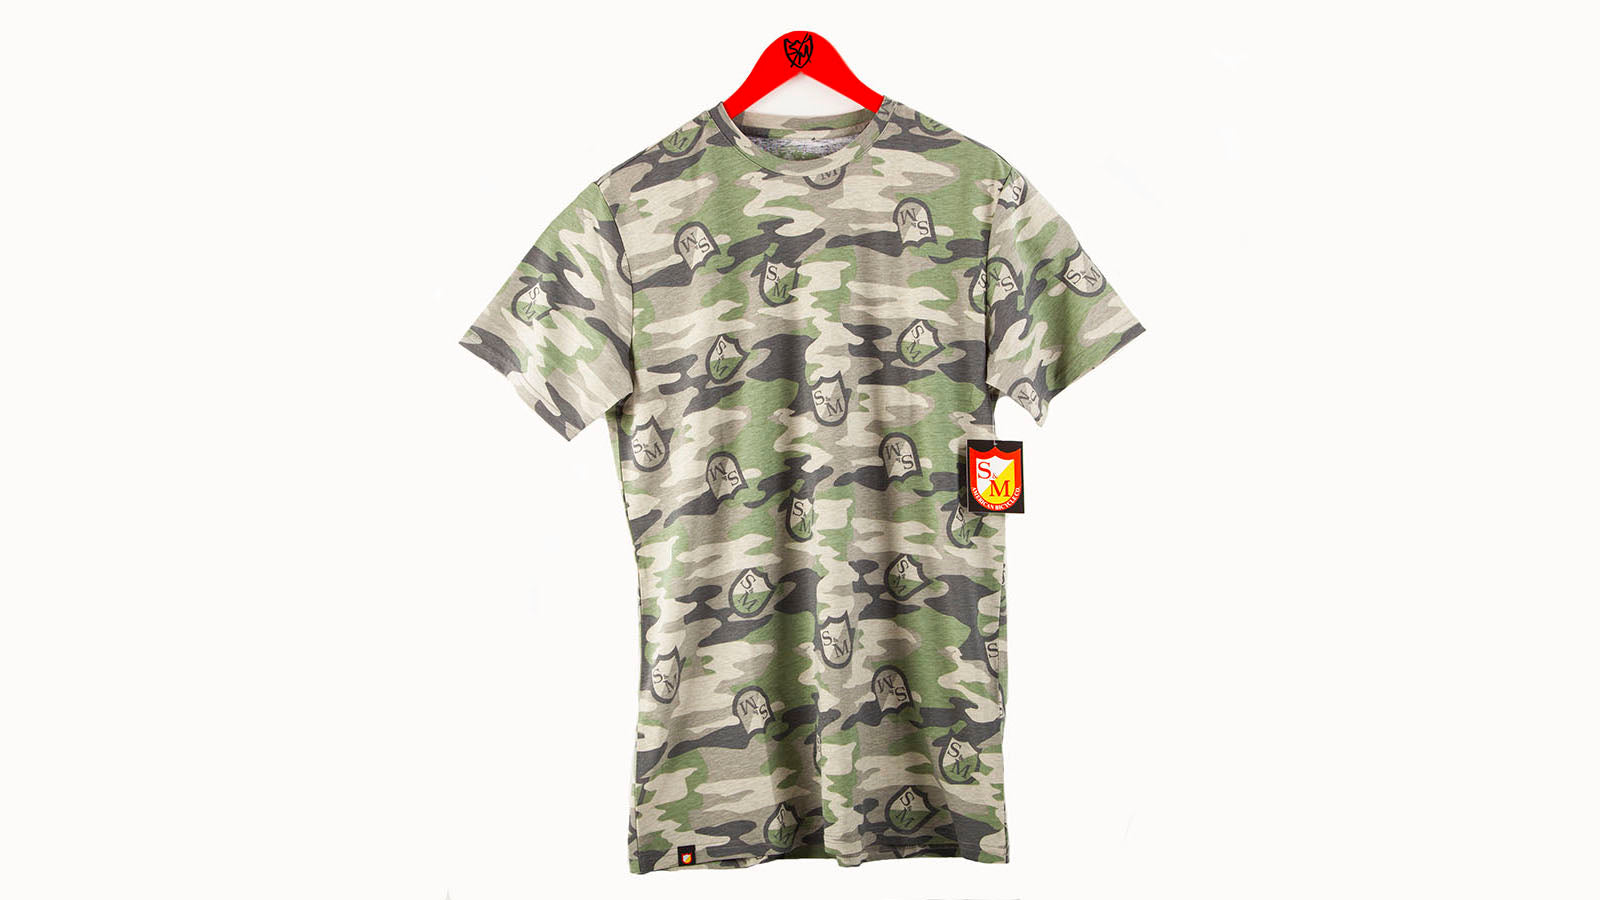 S&M Camo Shield T-Shirt